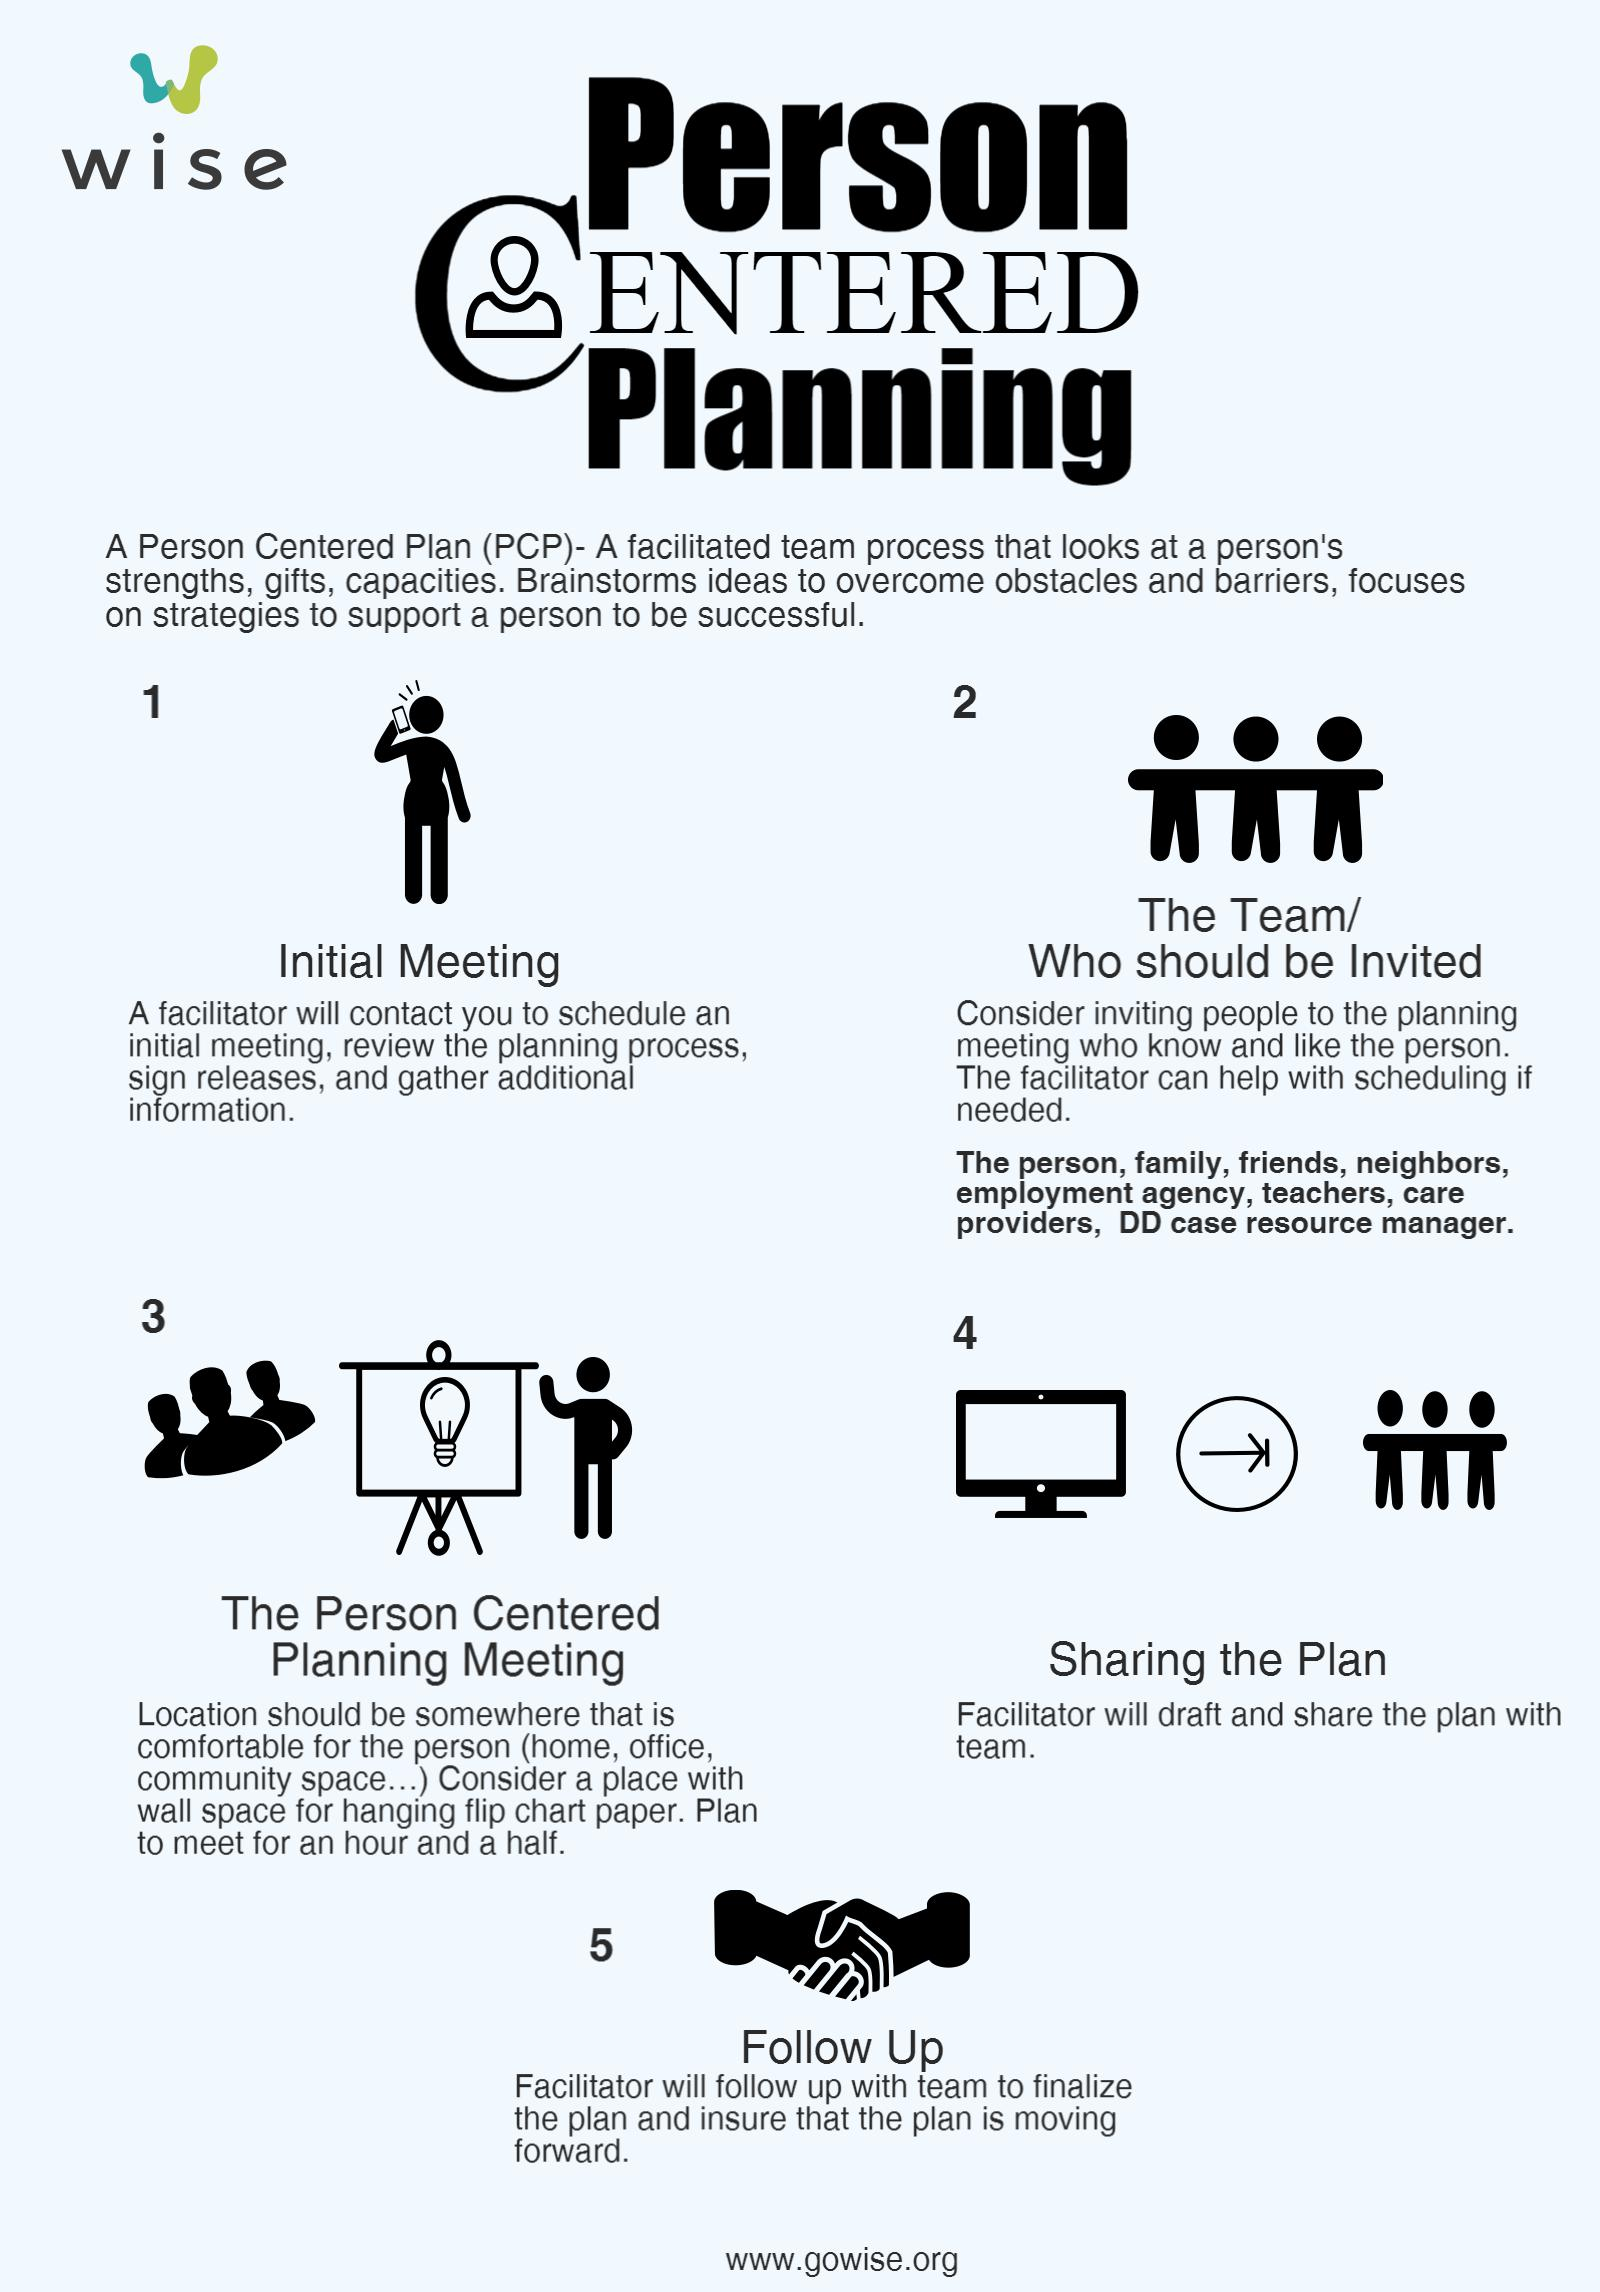 Person Centered Planning | Wise